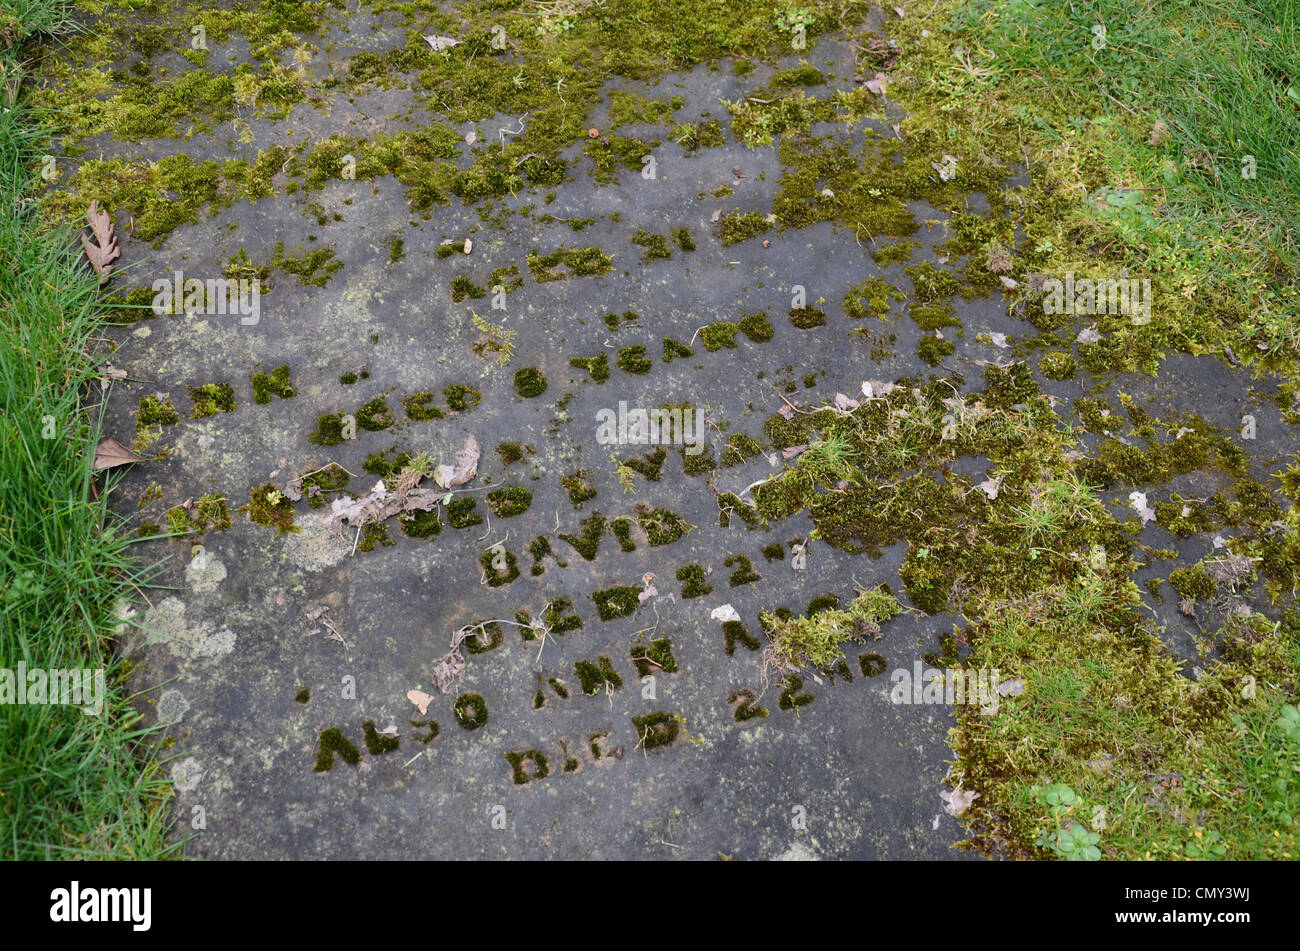 Gravestones just visible through the grass in the graveyard at Glasgow Cathedral, Scotland, UK. - Stock Image